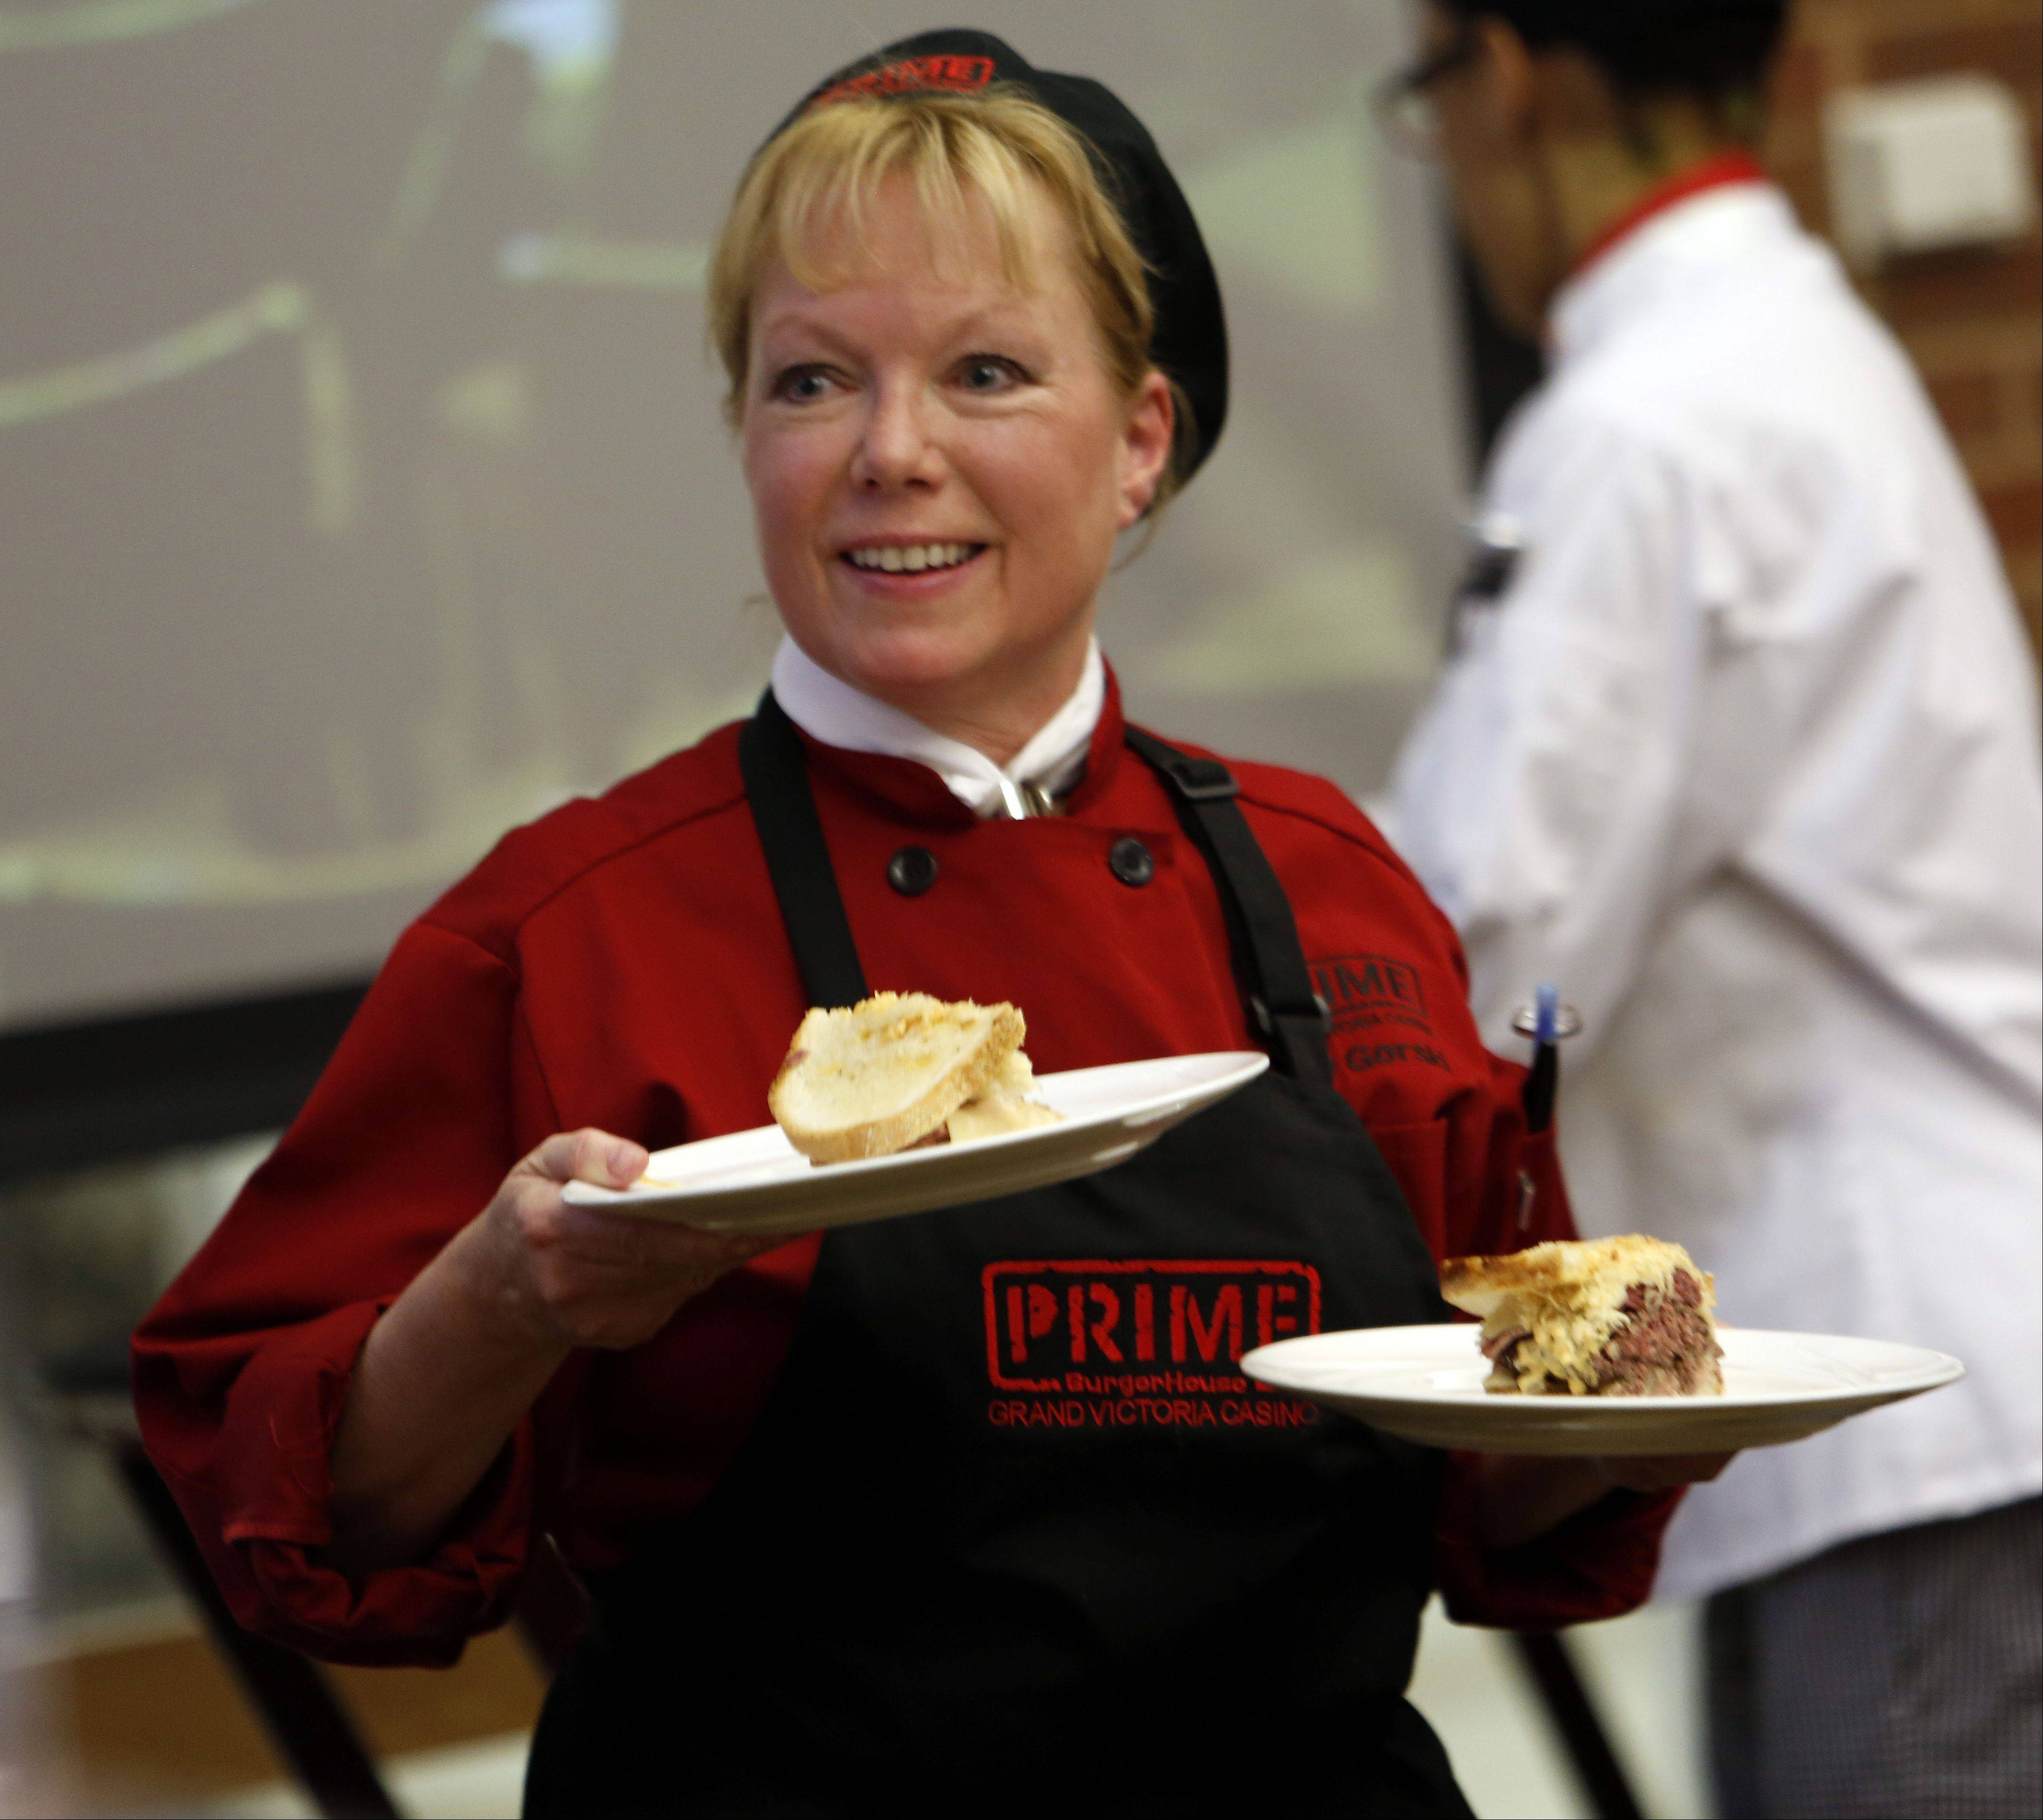 Elgin Community College's fifth annual ECC-Prime BurgerHouse Burger Competition was held Friday at the Spartan Terrace Restaurant in Elgin.